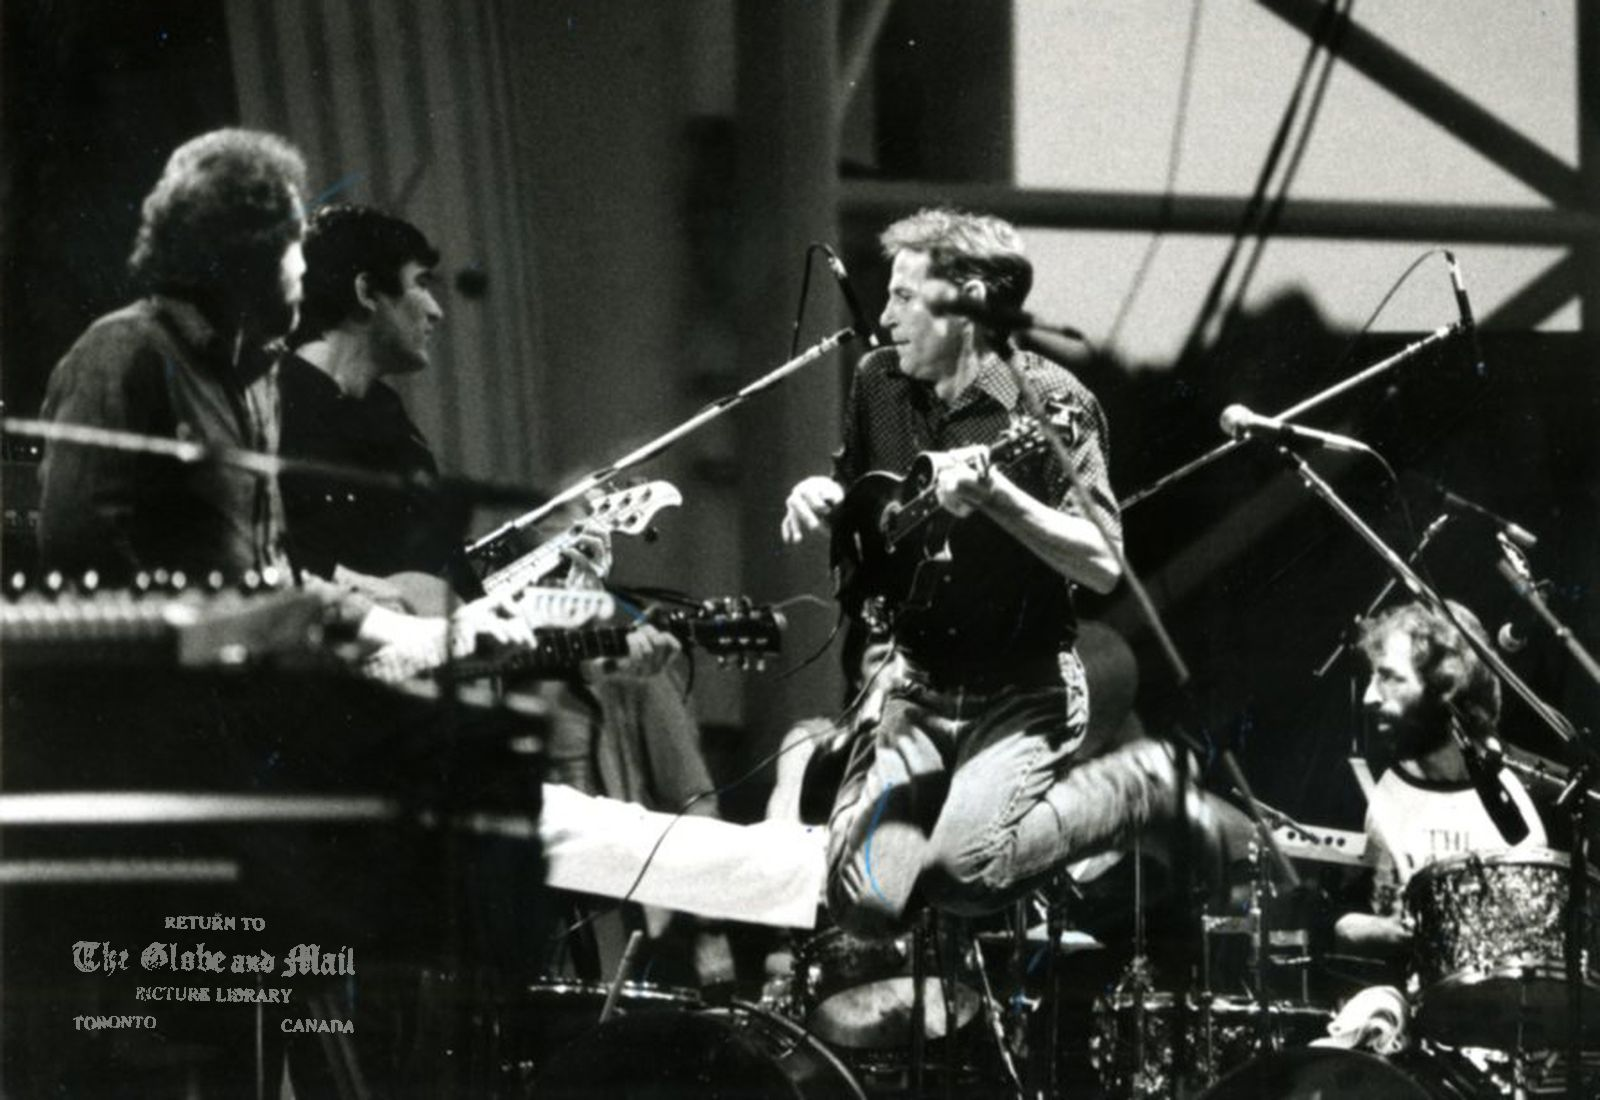 Levon Helm of The Band jumps into the air while Richard Manuel fills in on the drums July 4, 1983. Credit: Thomas Szlukovenyi / The Globe and Mail Orig. Pub. July 5, 1983